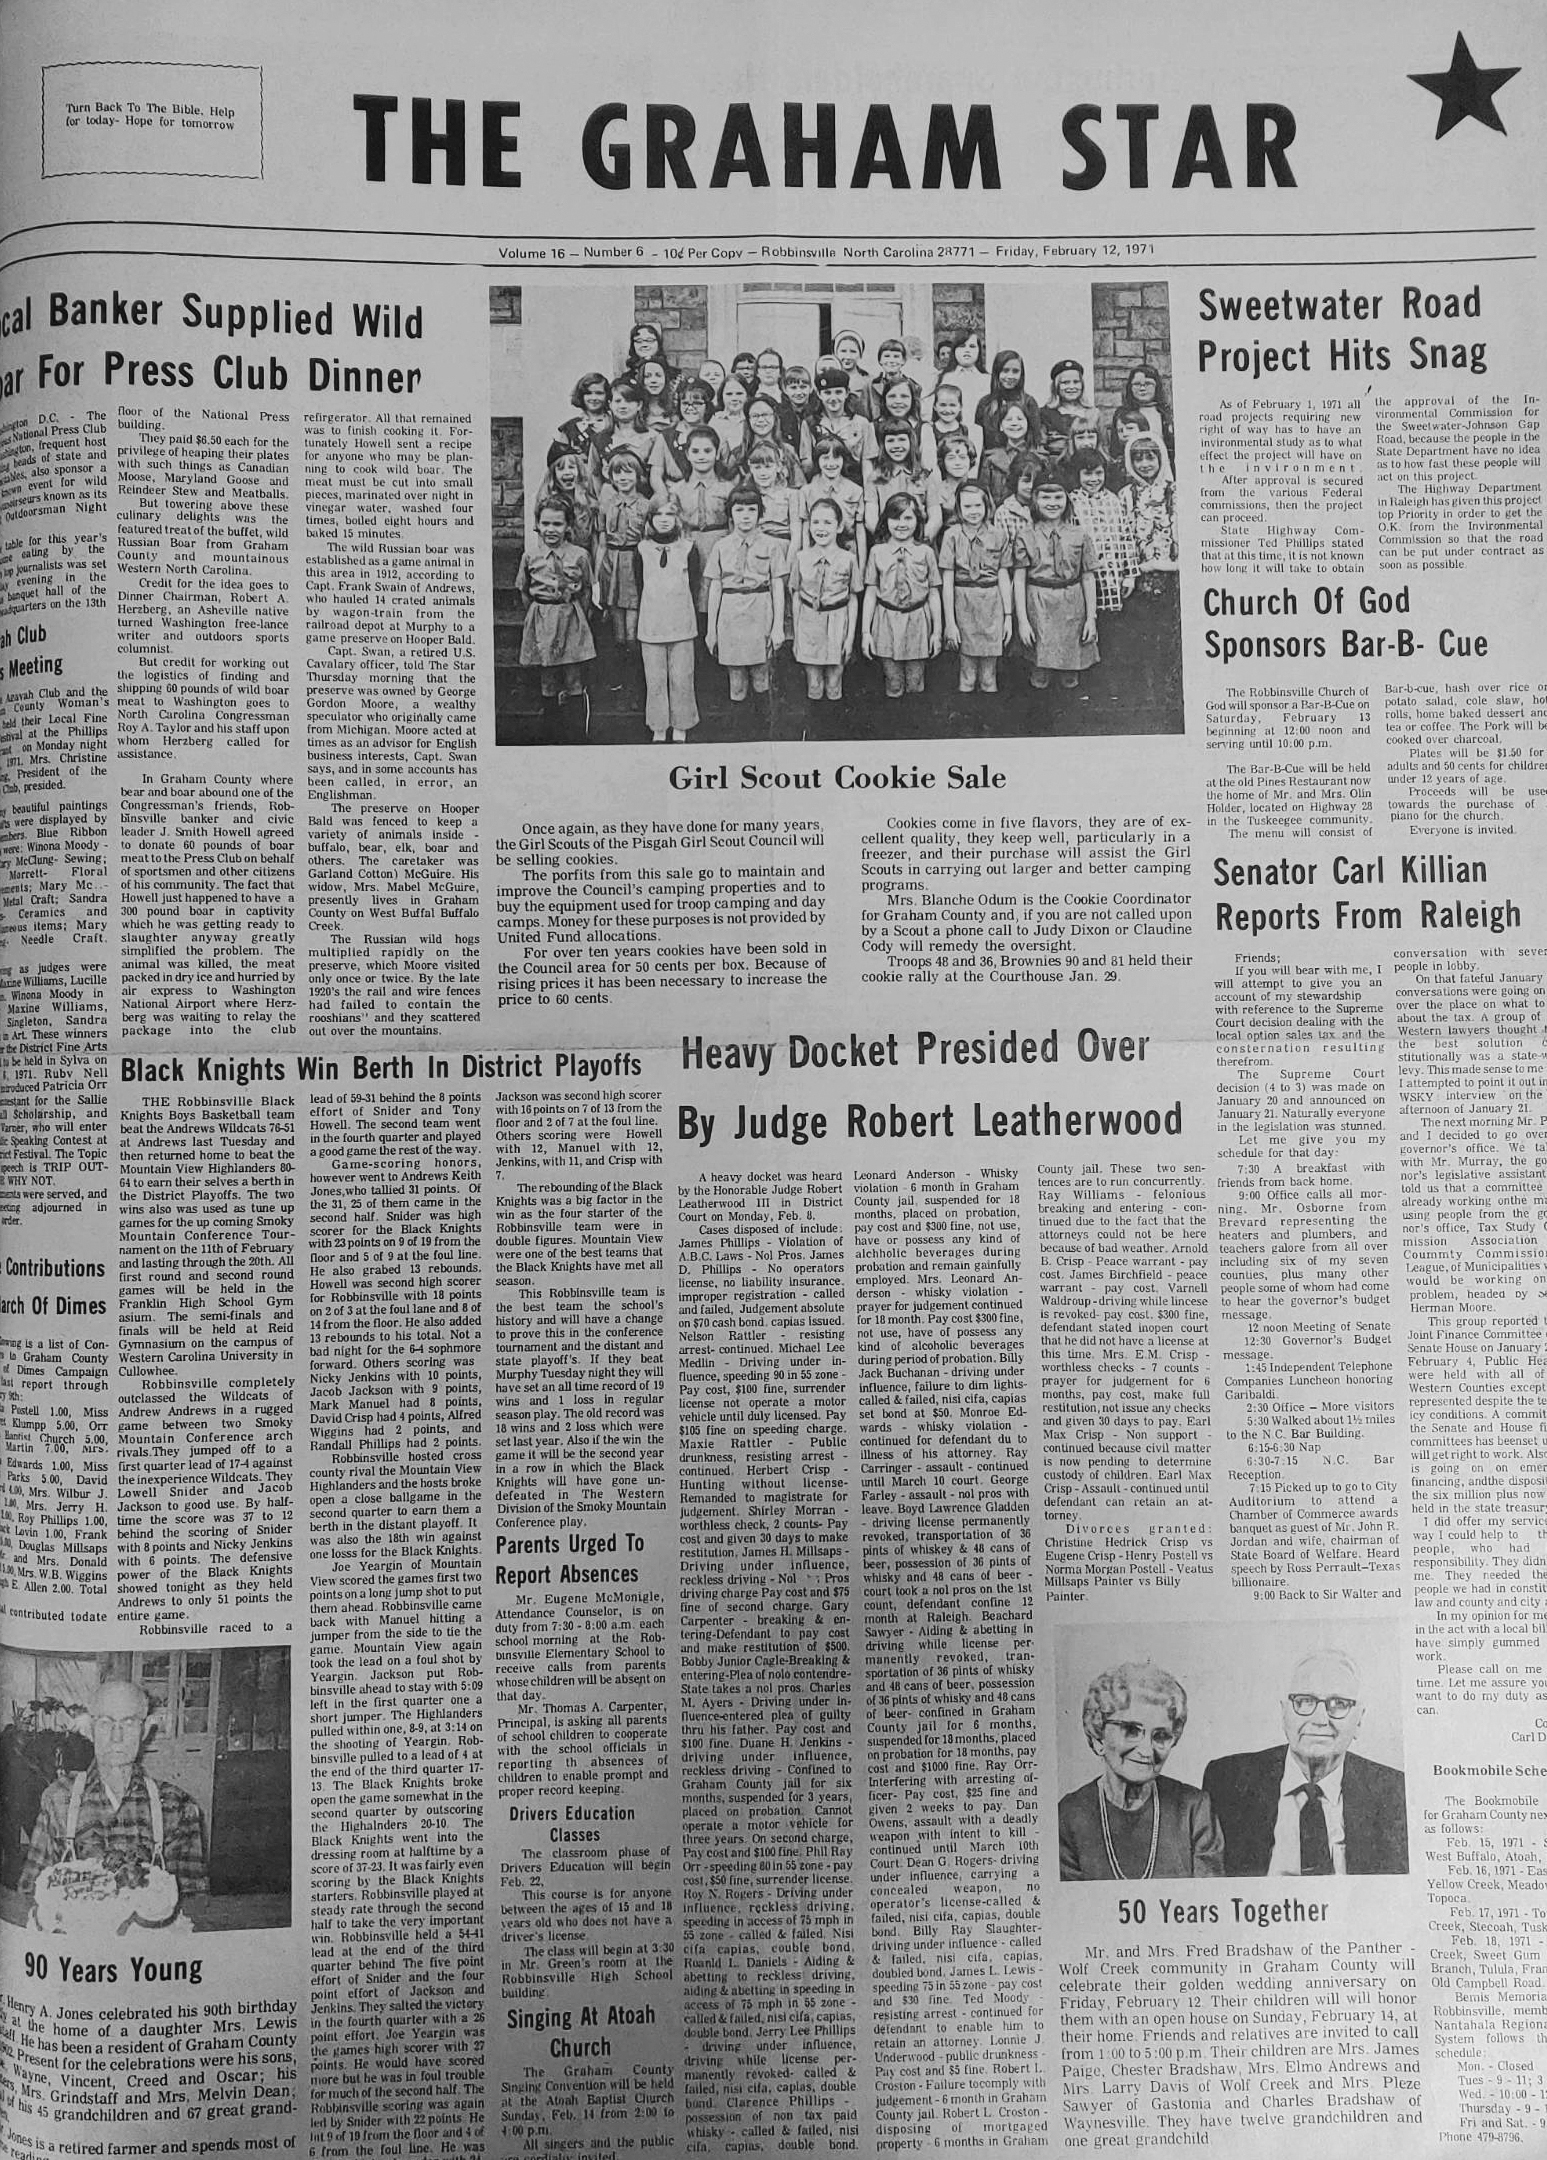 The Graham Star's front page from 50 years ago (Feb. 12, 1971).